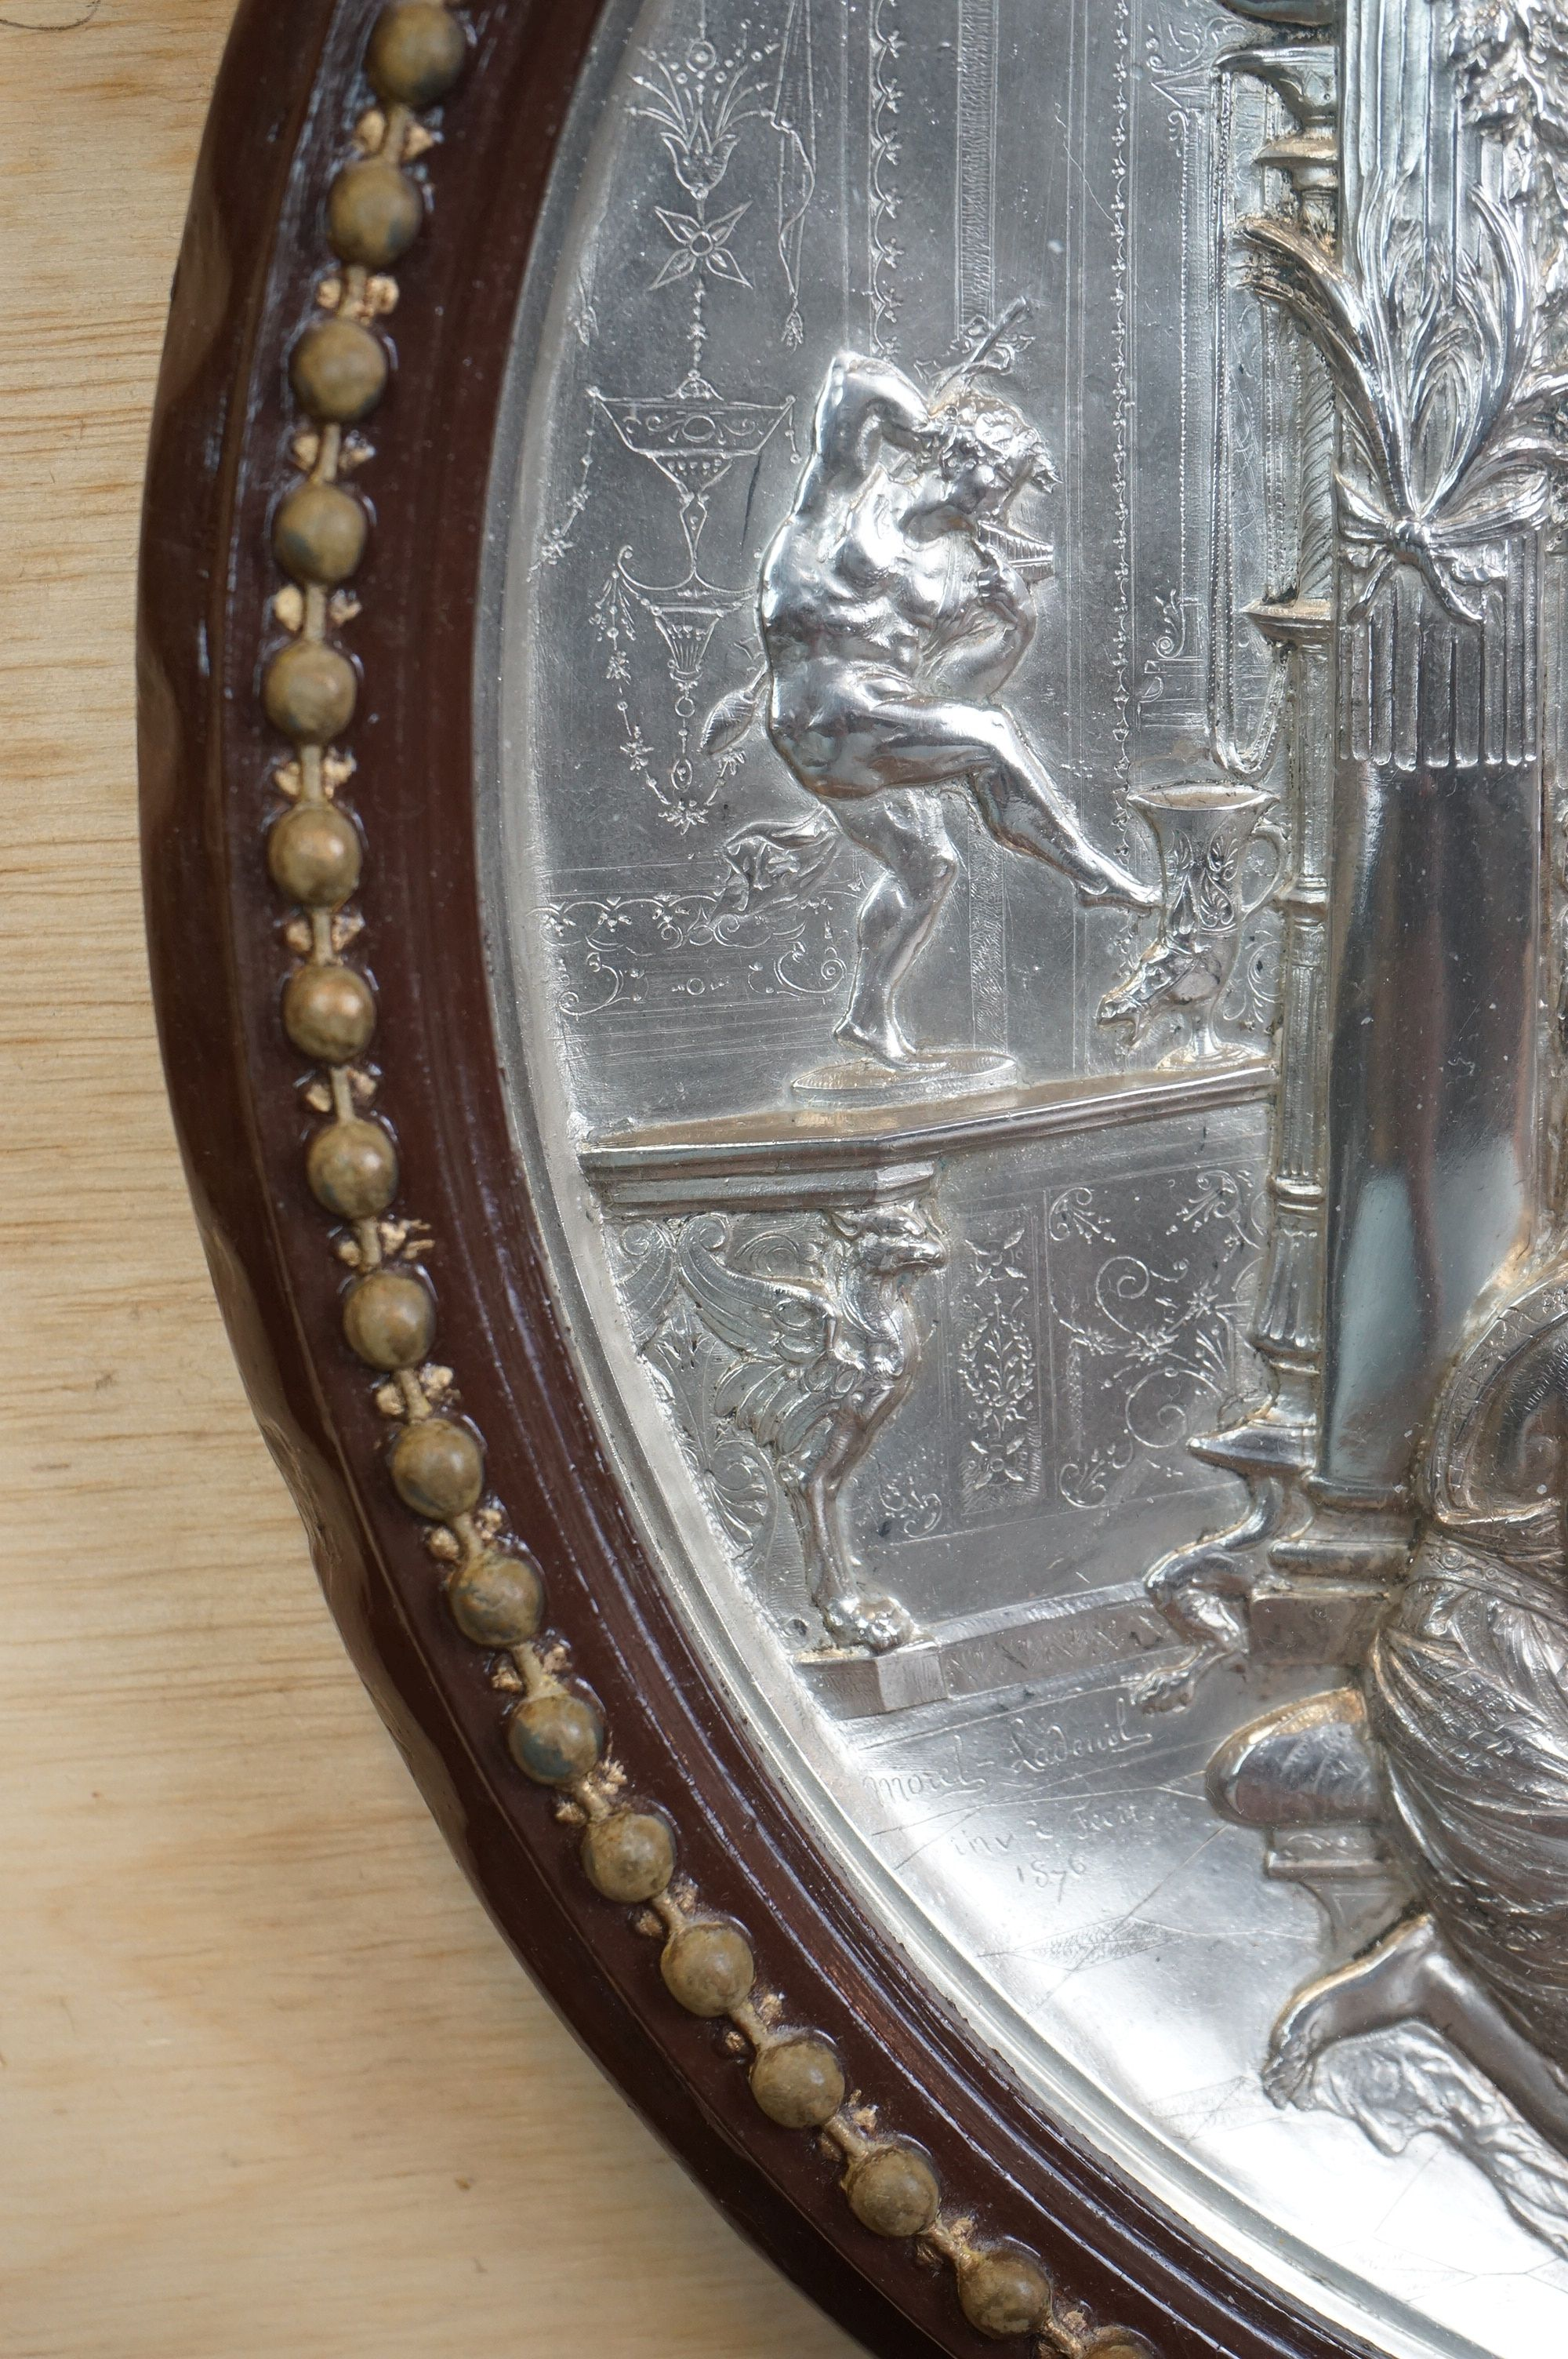 Elkington Silver Plated Circular Wall Plaque with embossed classical scene decoration, 32cms - Image 3 of 5